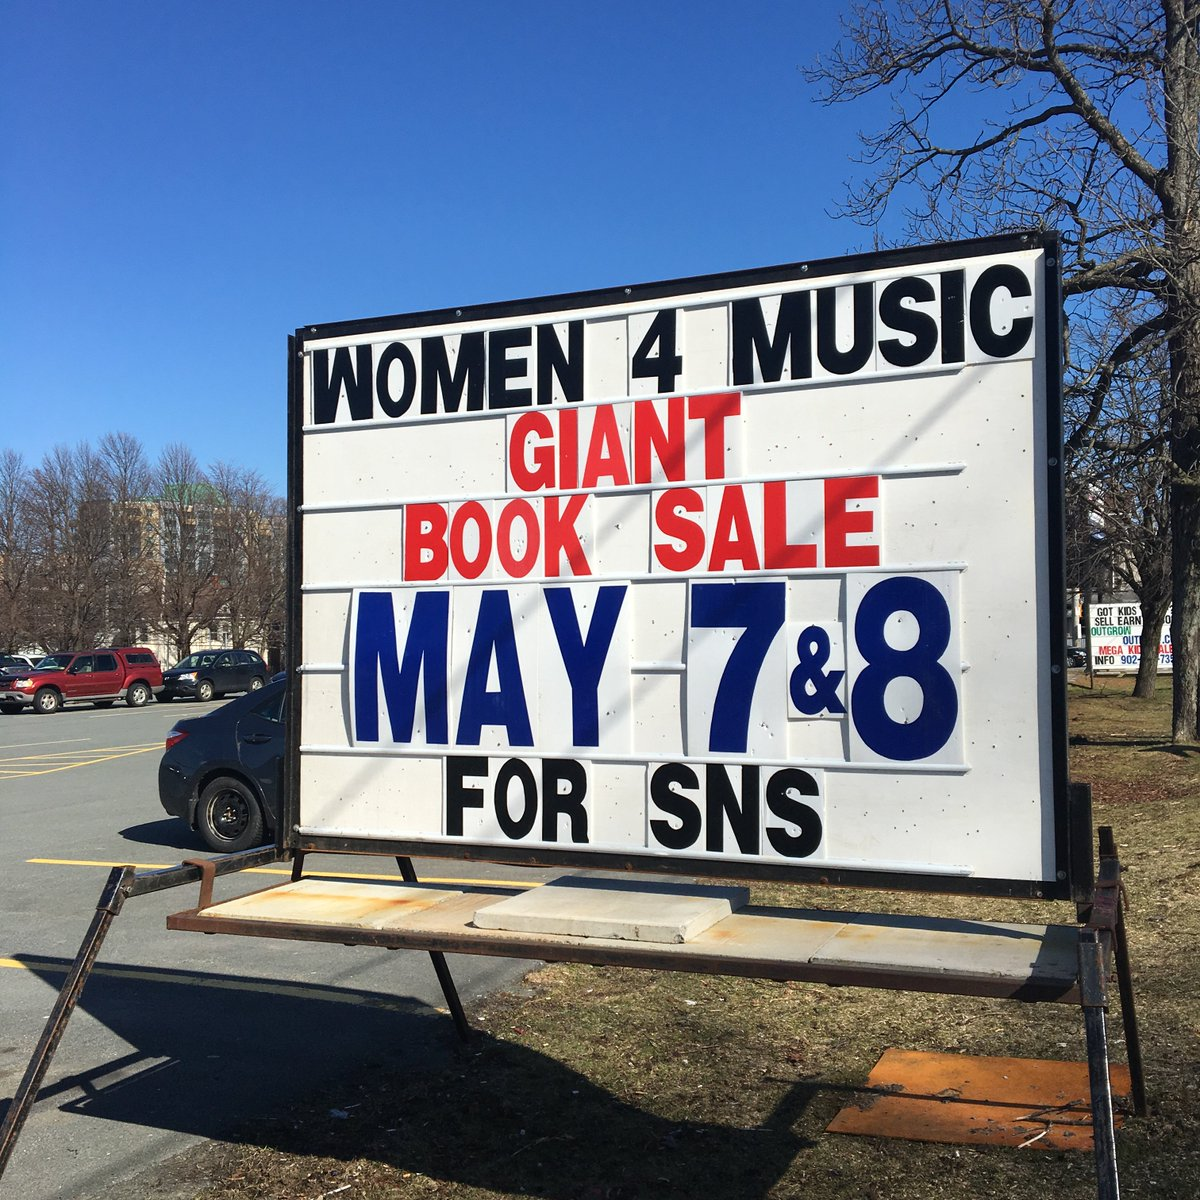 Don't miss the Women for Music Giant Book Sale this weekend at the Halifax Forum! Saturday 9 to 6 and Sunday 9 to 3. https://t.co/DOEKwebkei